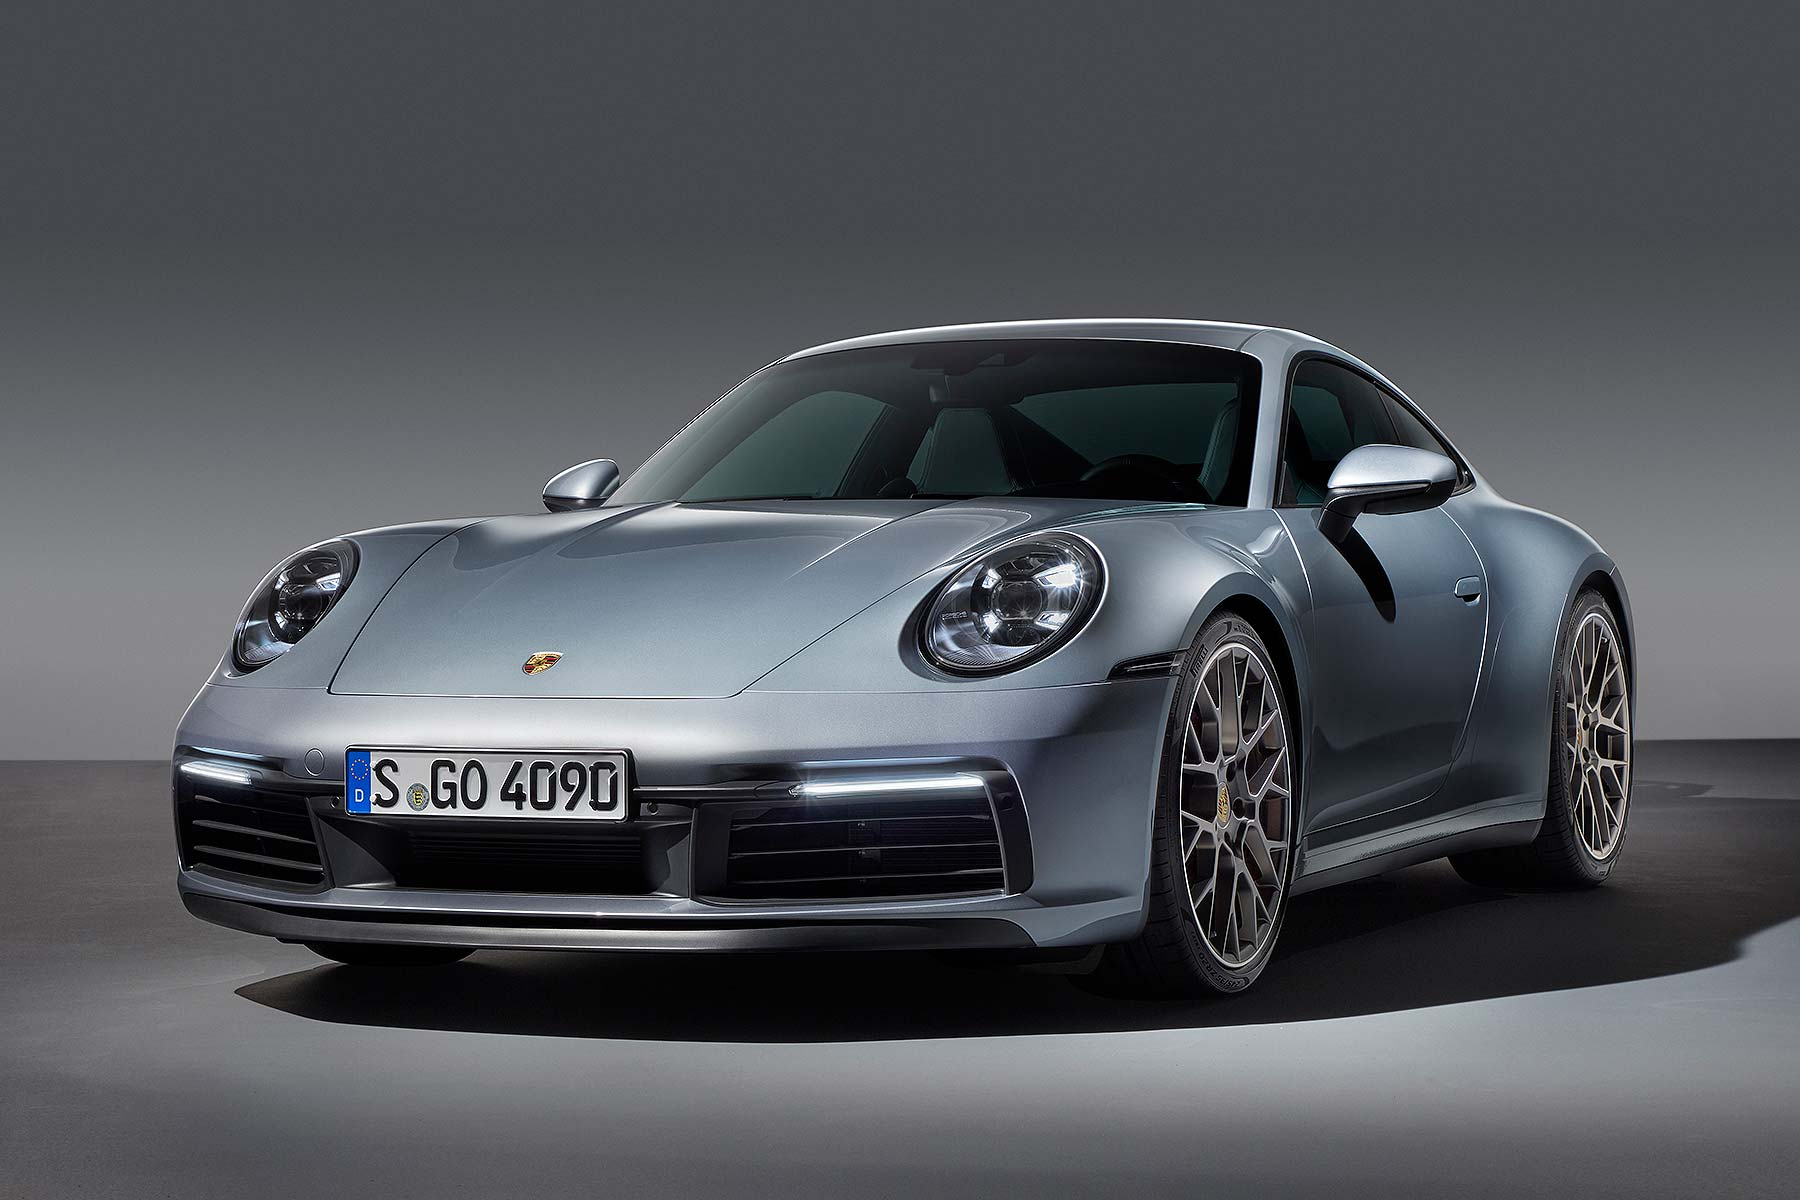 New 2019 Porsche 911 Revealed: Everything You Need To Know